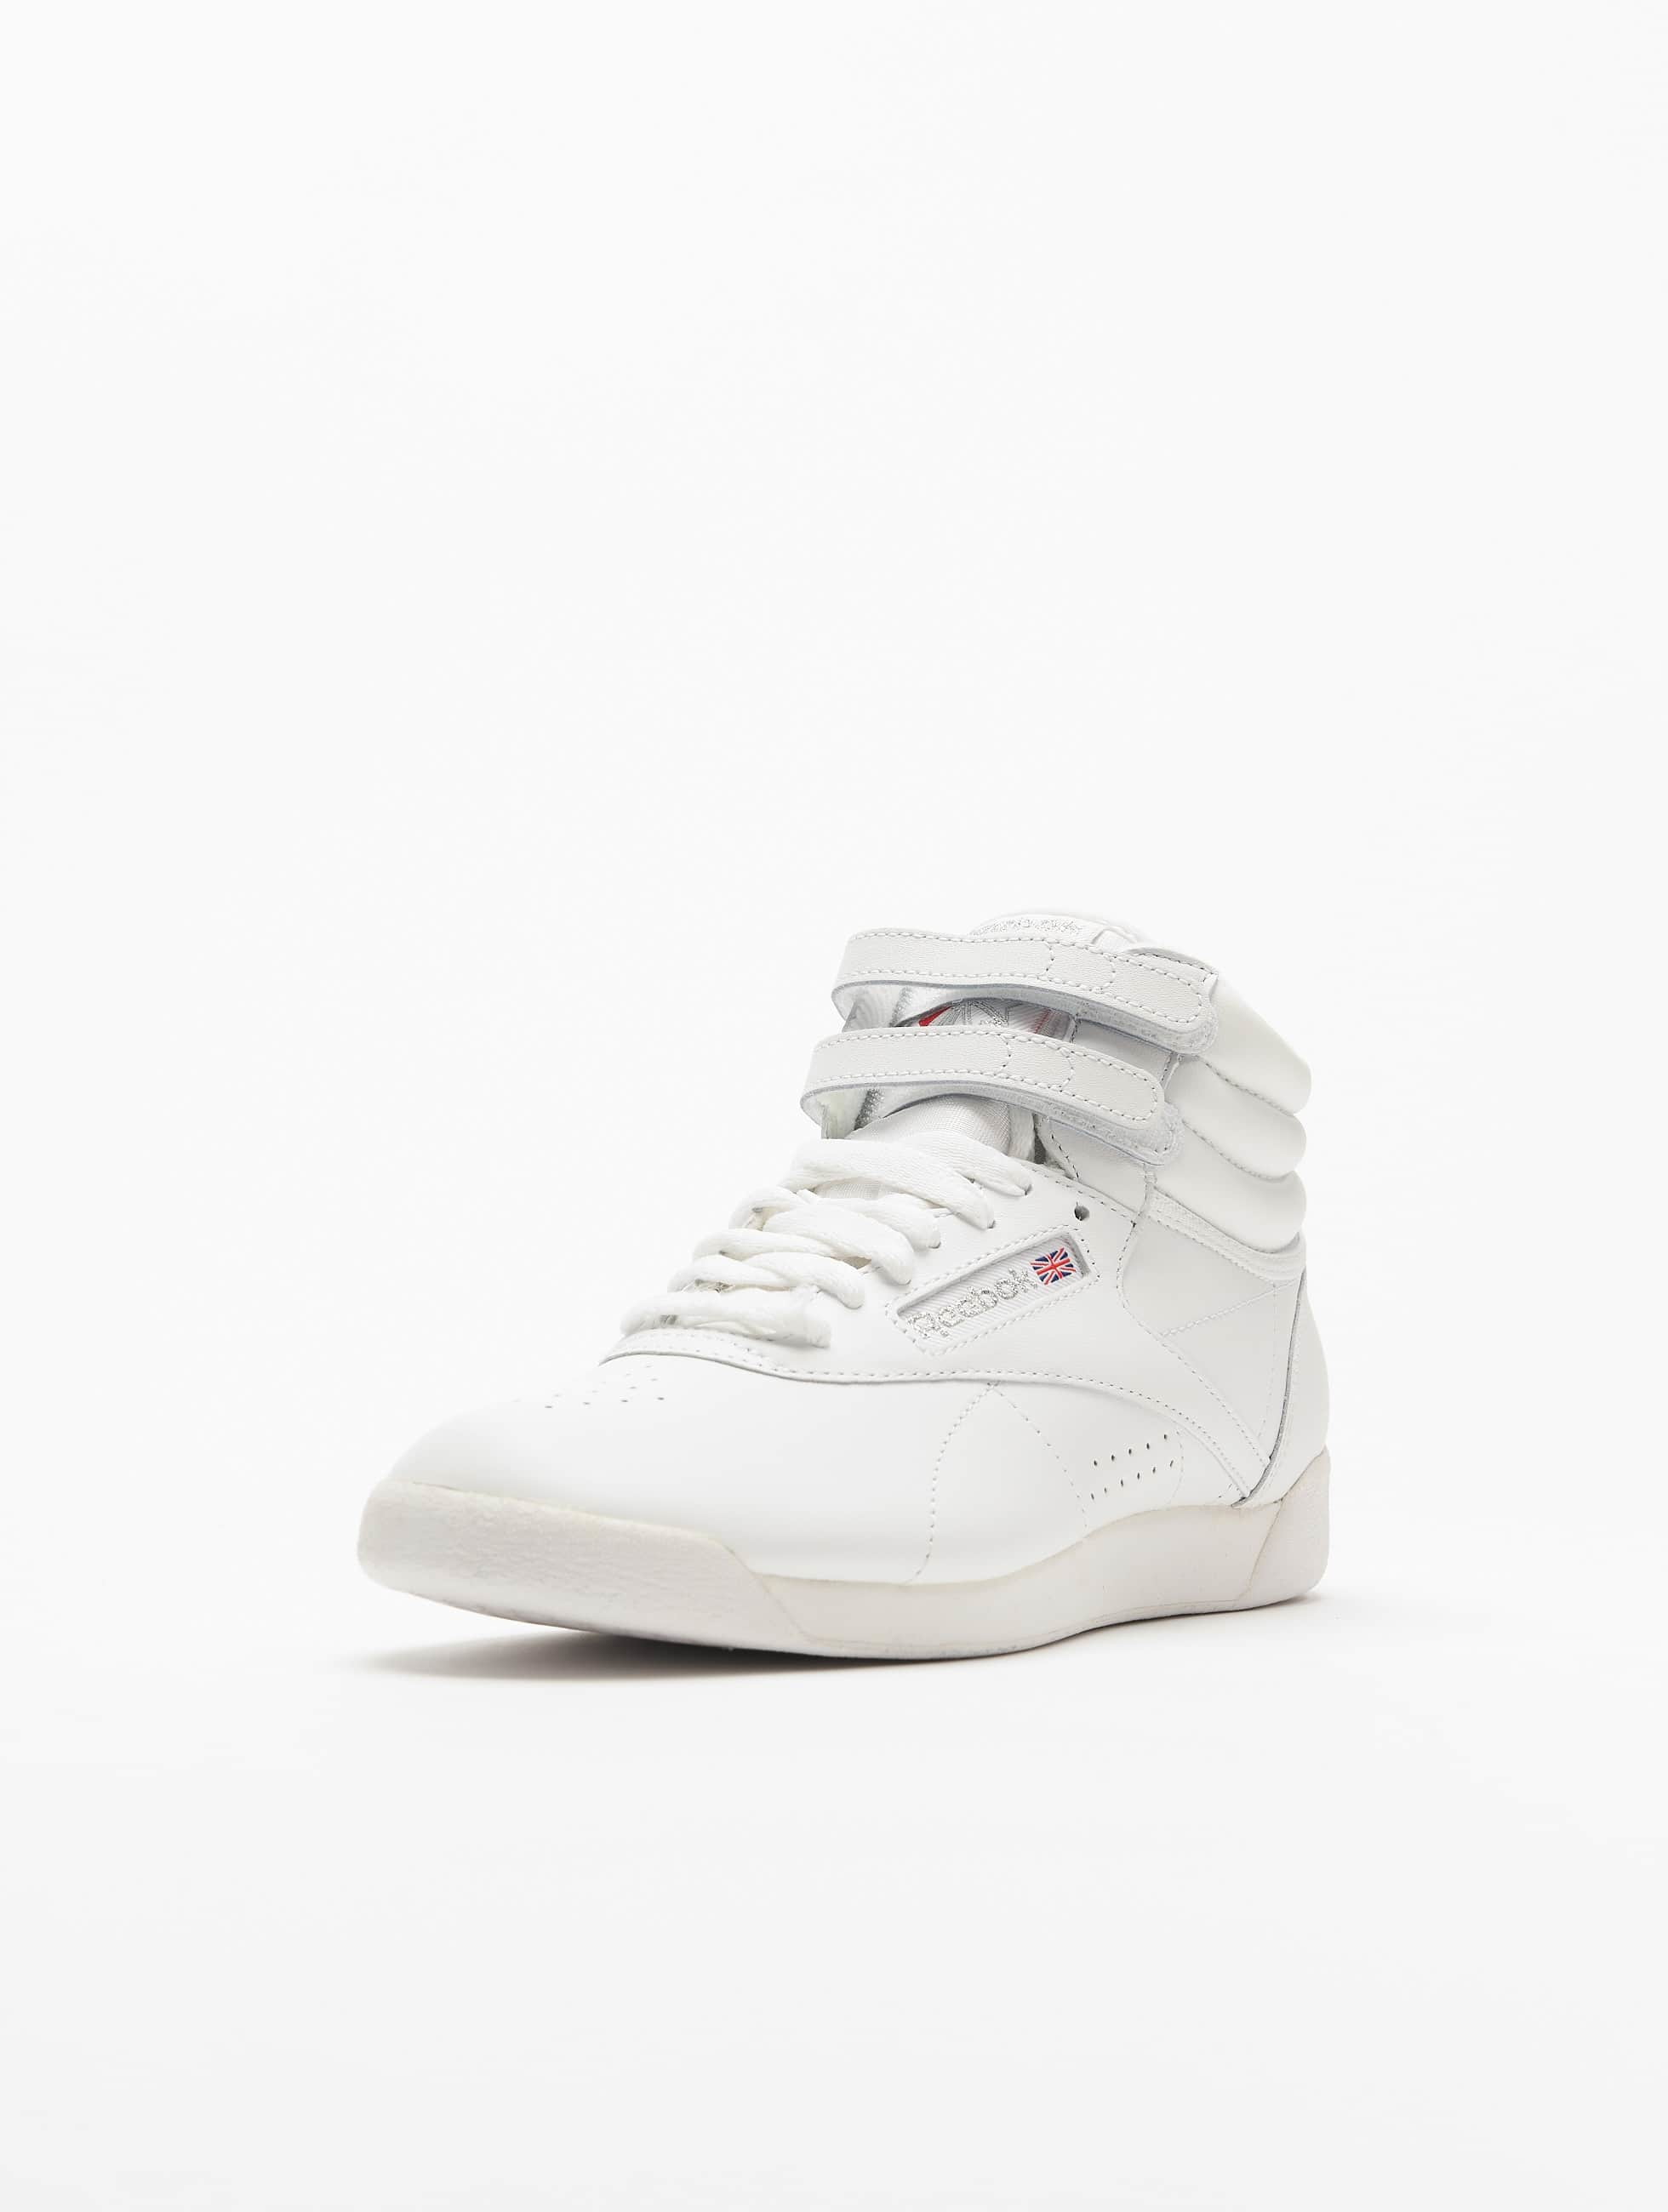 Reebok Sneakers Freestyle Hi Basketball Shoes white